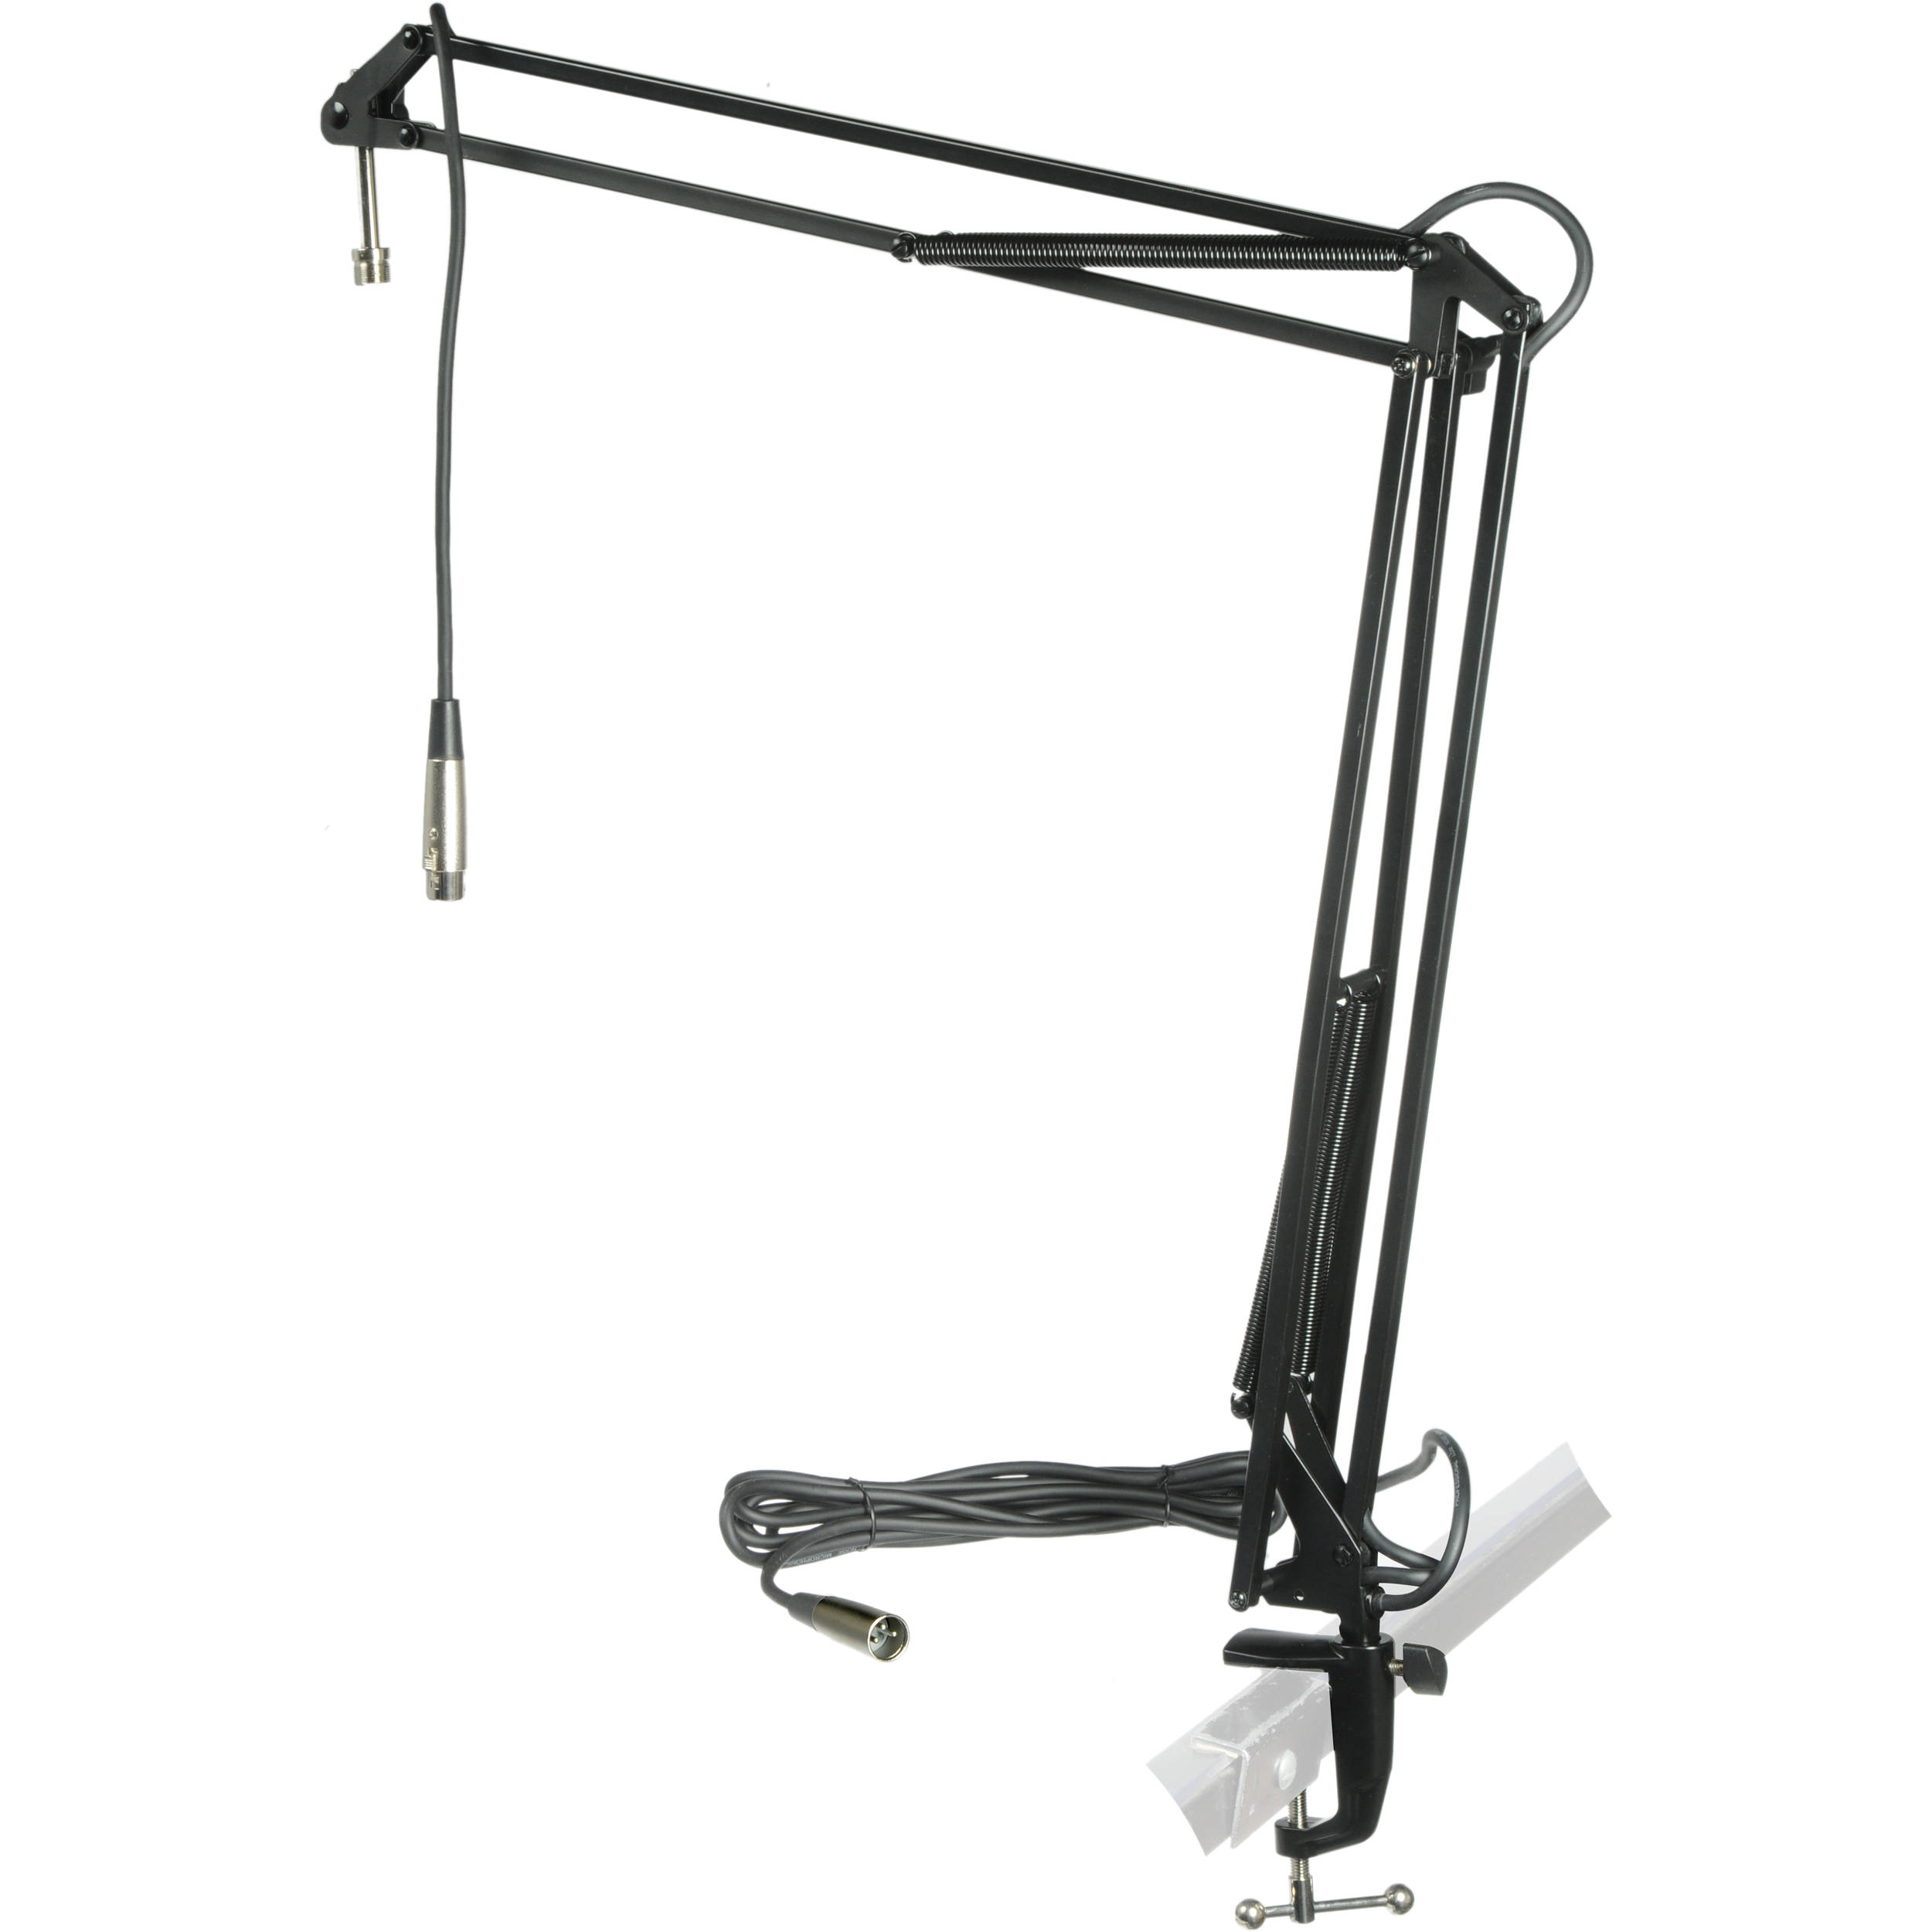 MXL BCDStand Desktop Microphone Stand BCDSTAND BH Photo Video